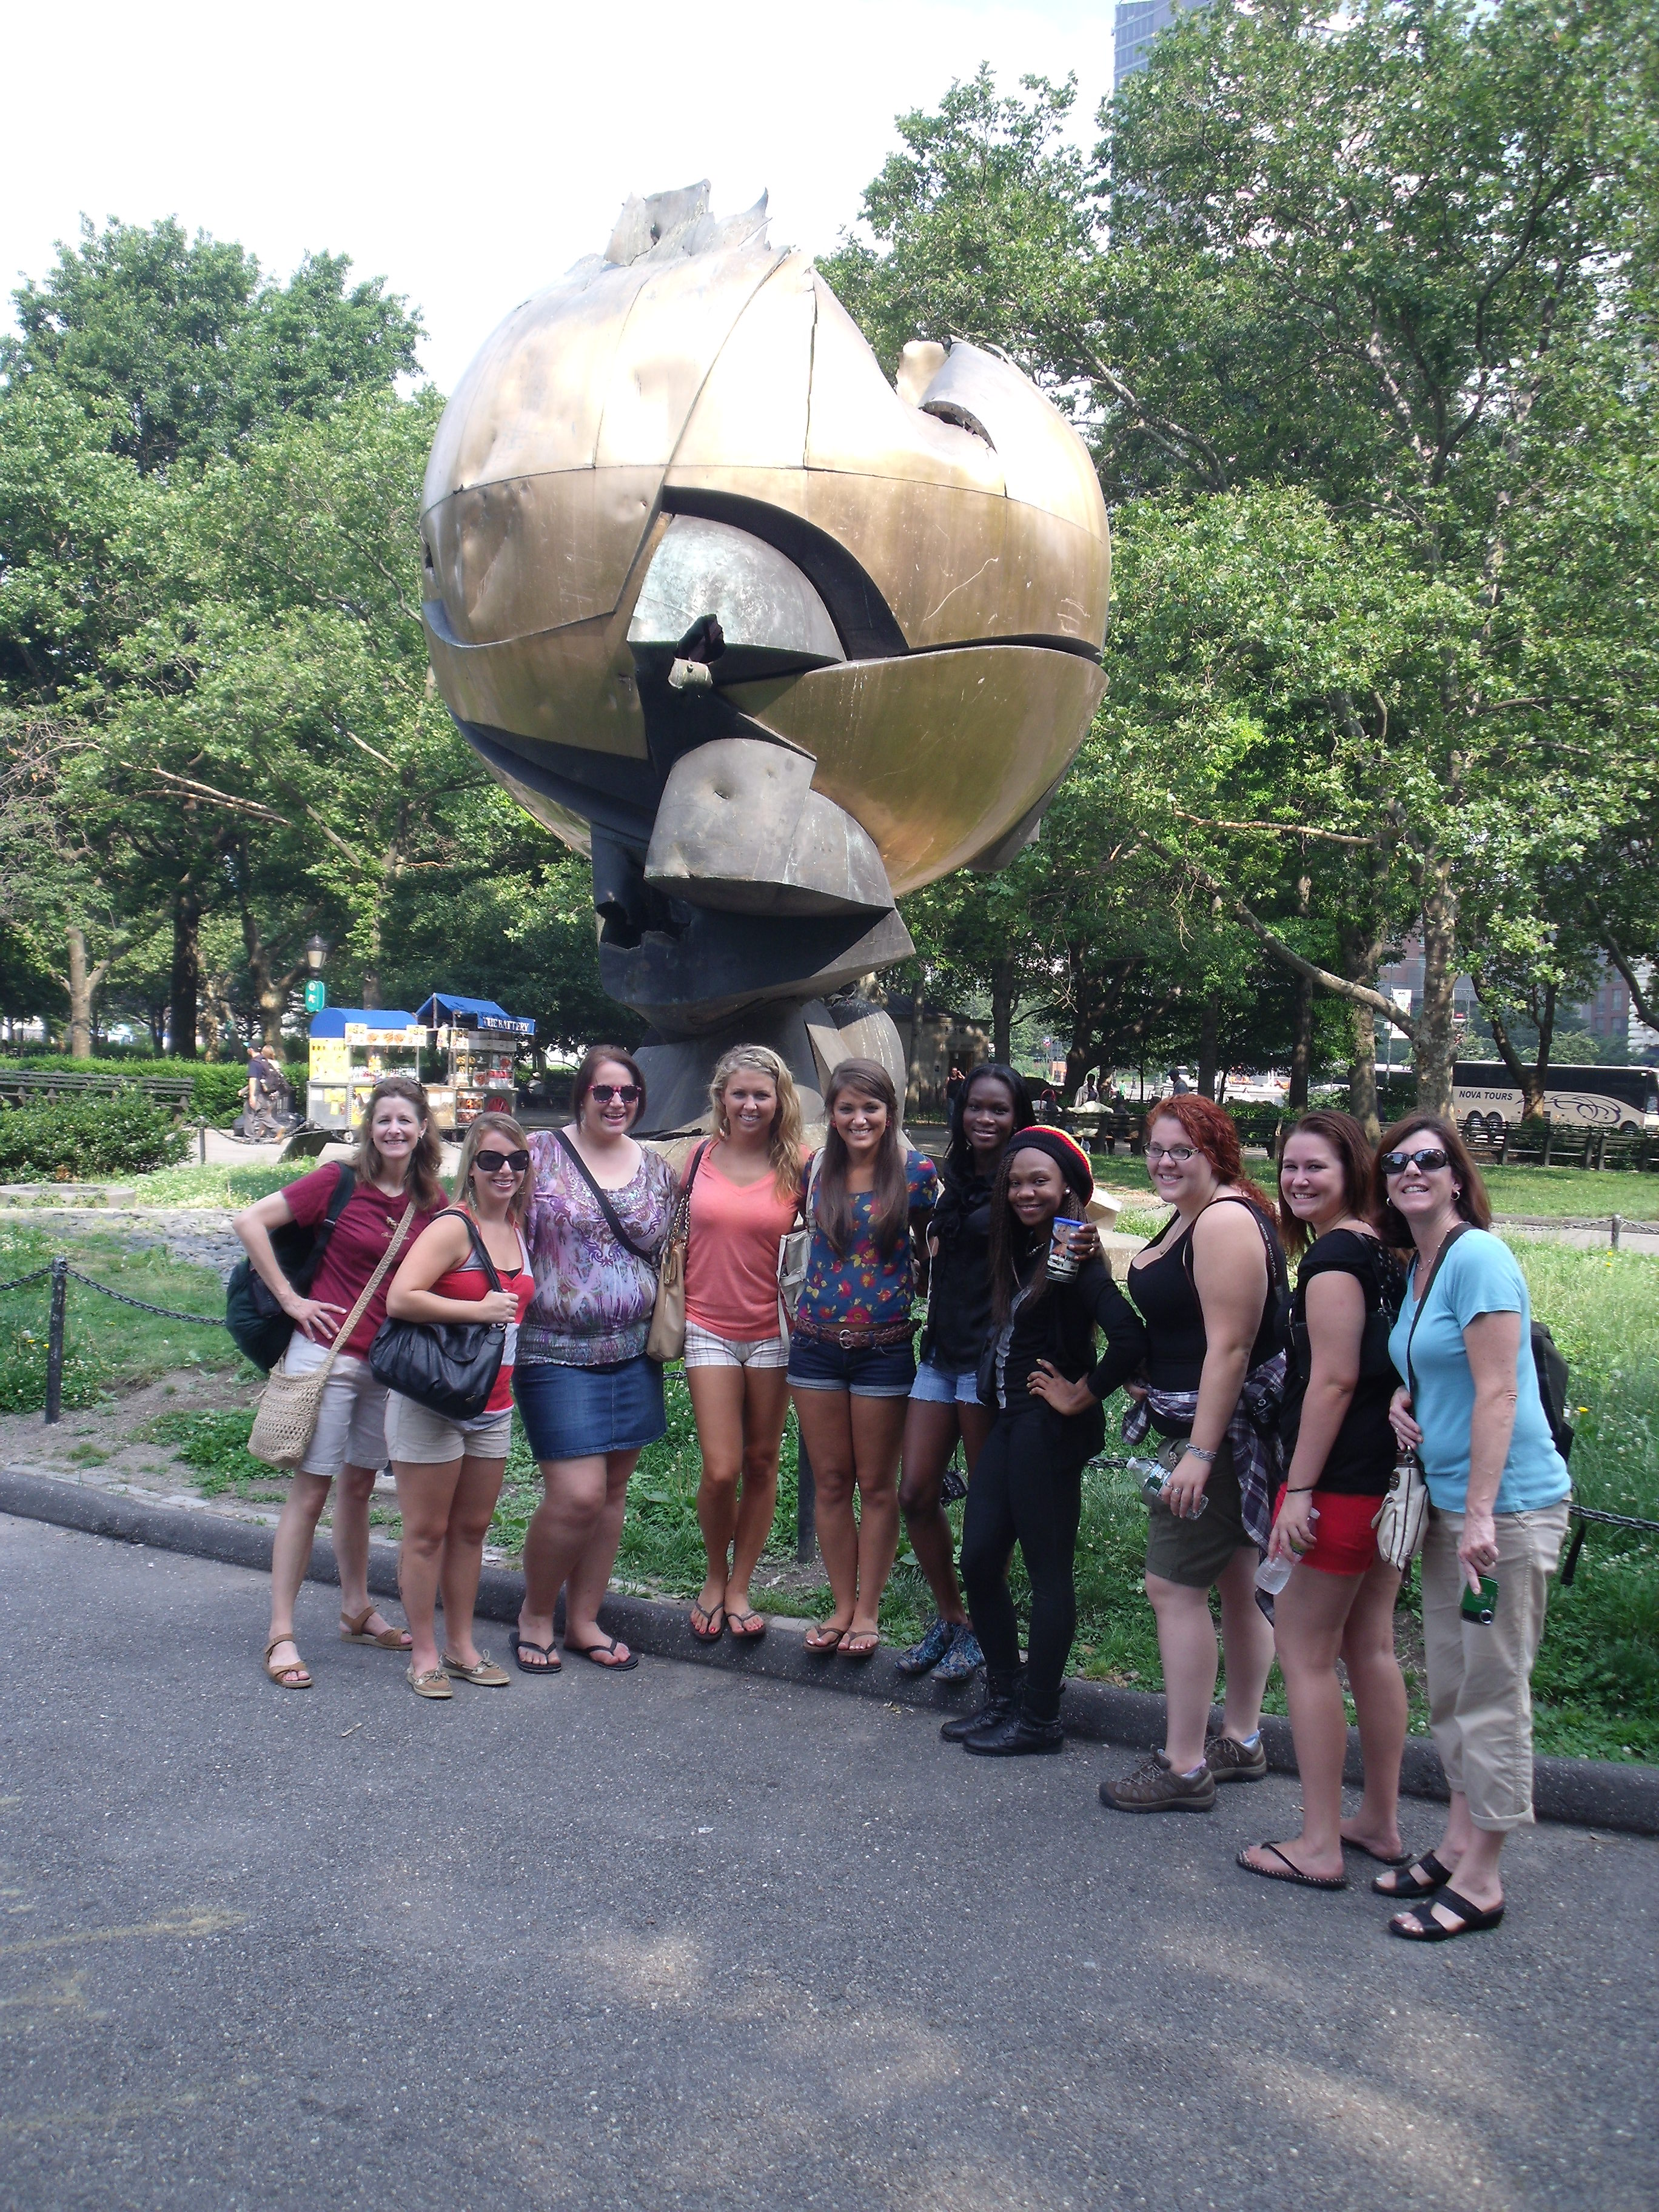 A group shot in front of the 9/11 sculpture.